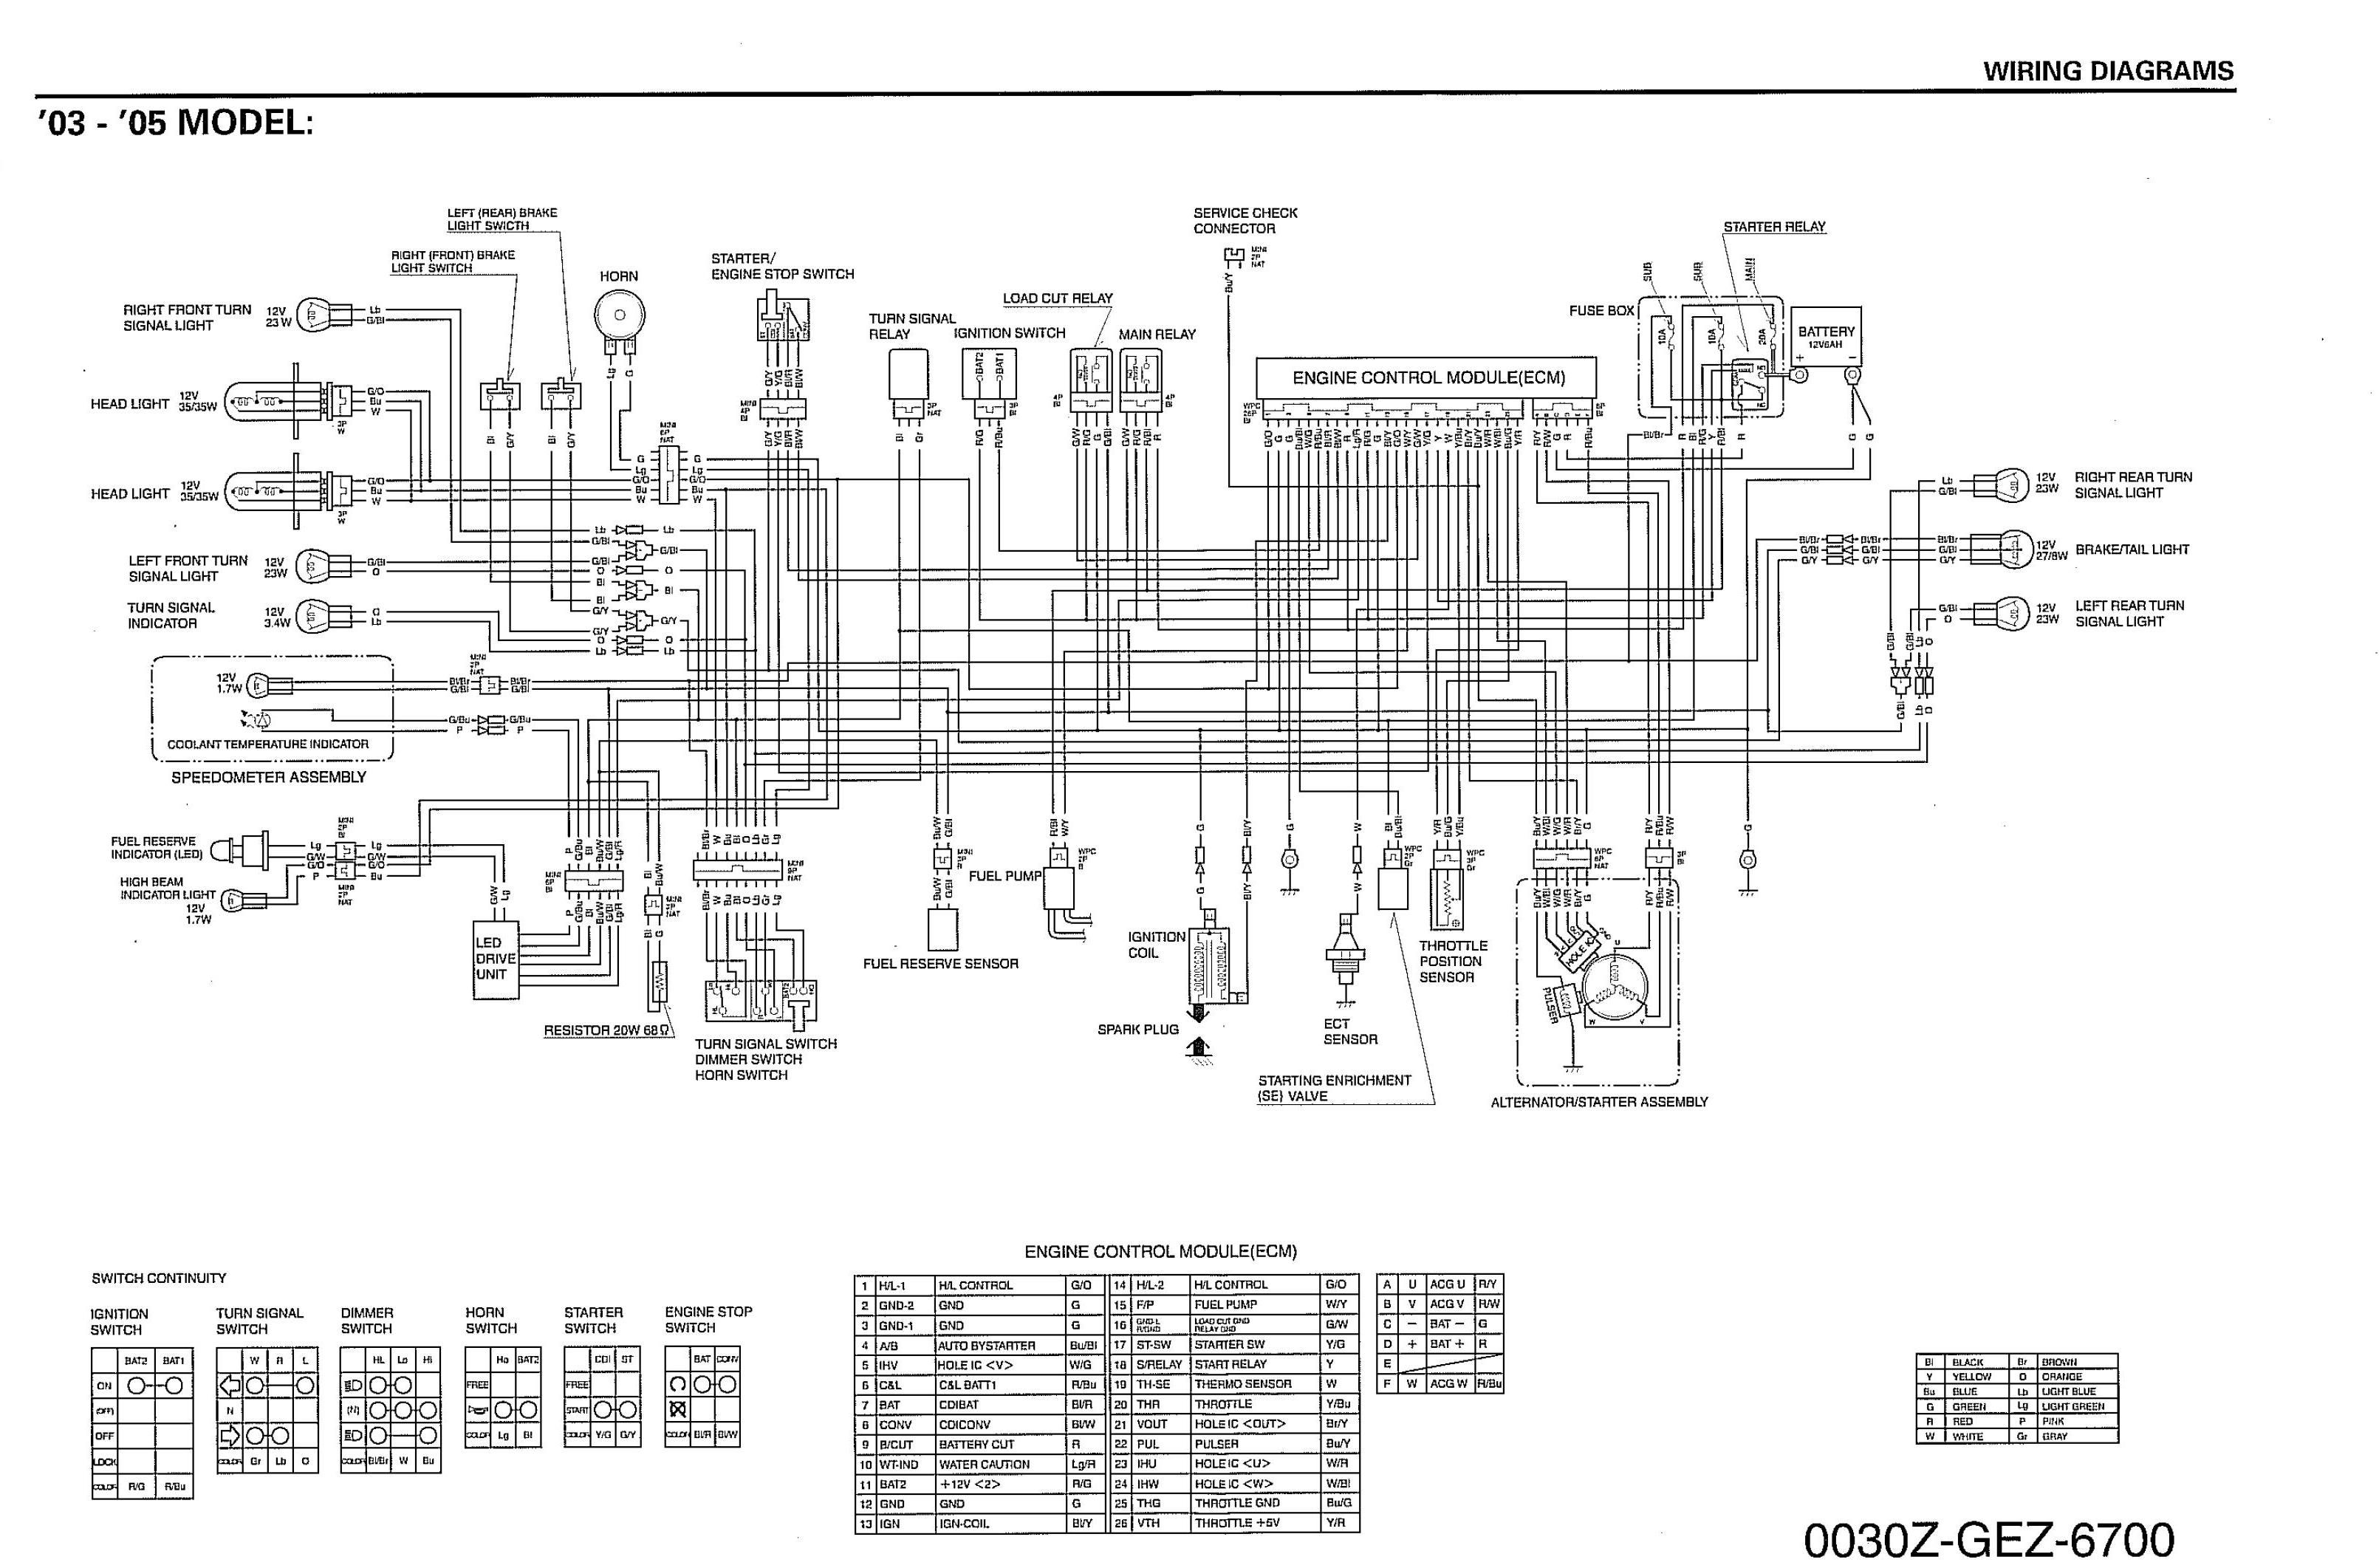 Sujet2440 3045 further Honda Shadow Engine Diagram also Discussion T60374 ds560387 likewise 2002 300ex Wiring Diagram likewise IV2b 15168. on lexus is 250 radio wiring diagram